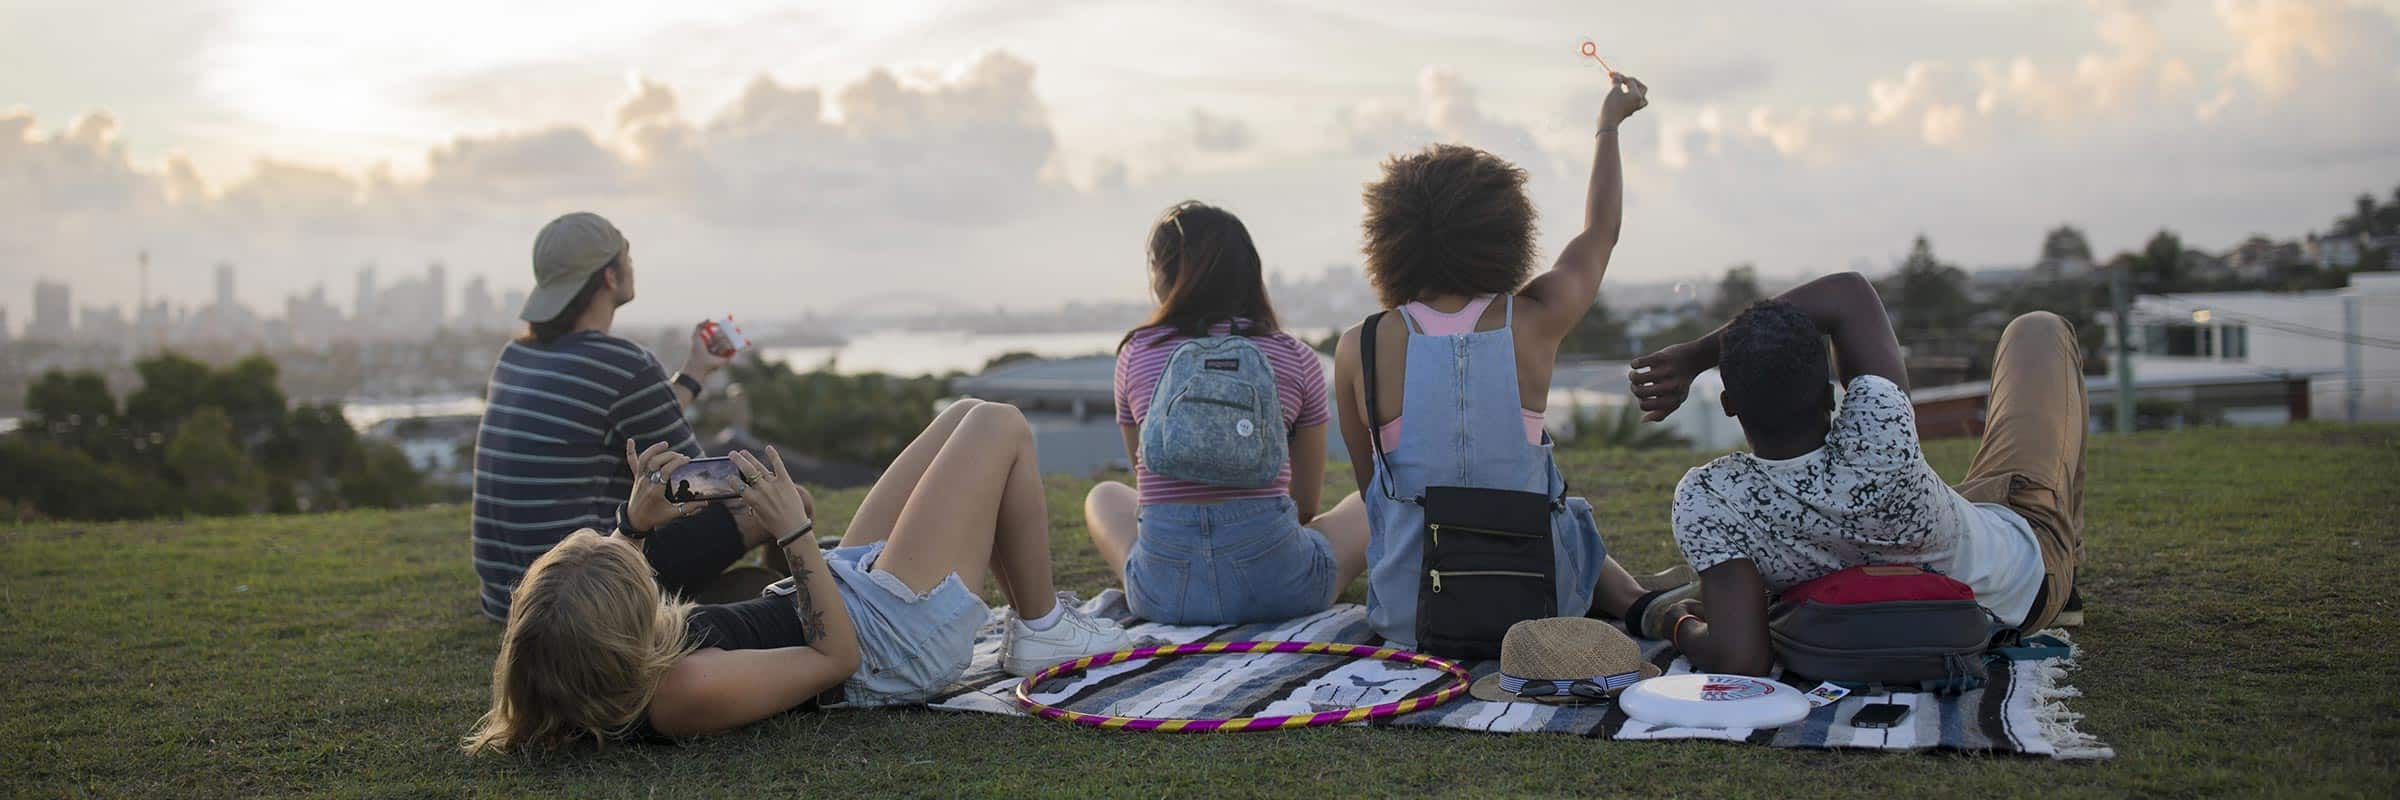 JanSport. Head Back to School in Style with JanSport Backpacks